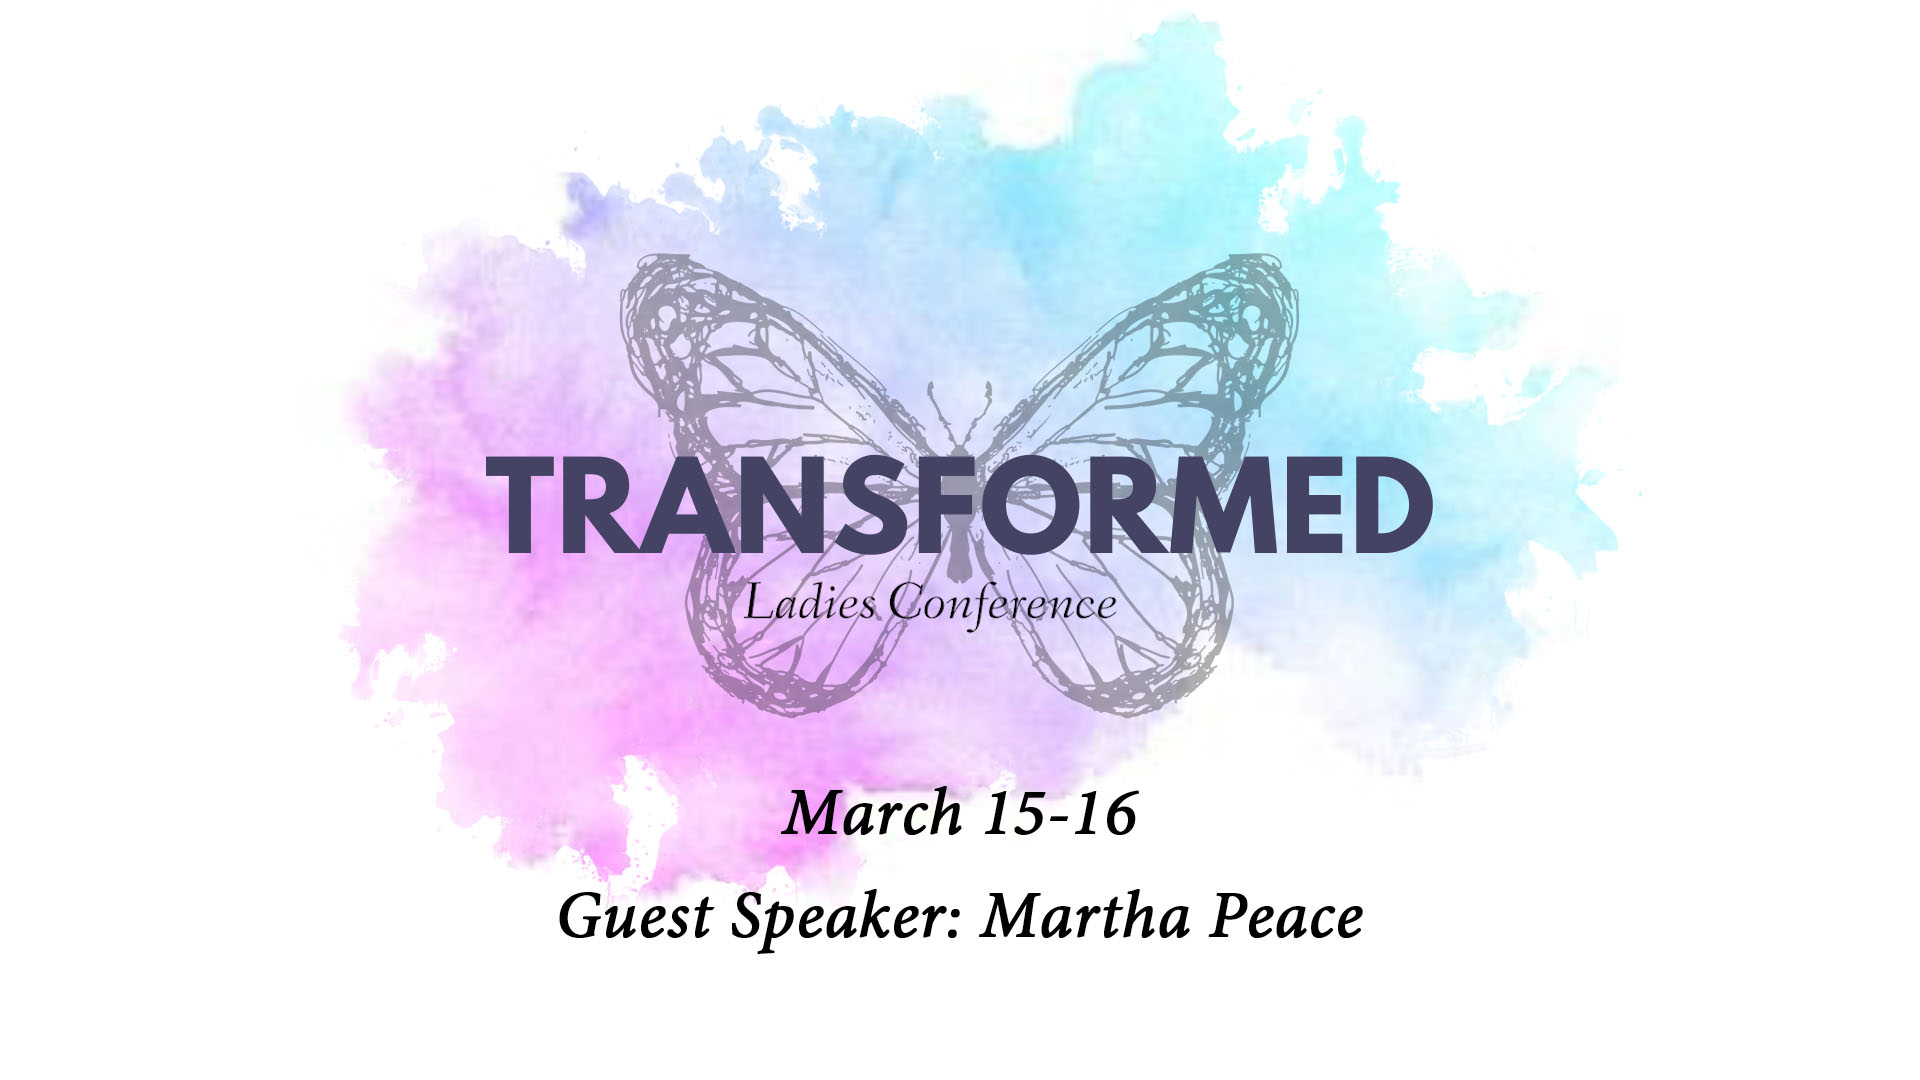 Session 3: Transformed Women's Conference